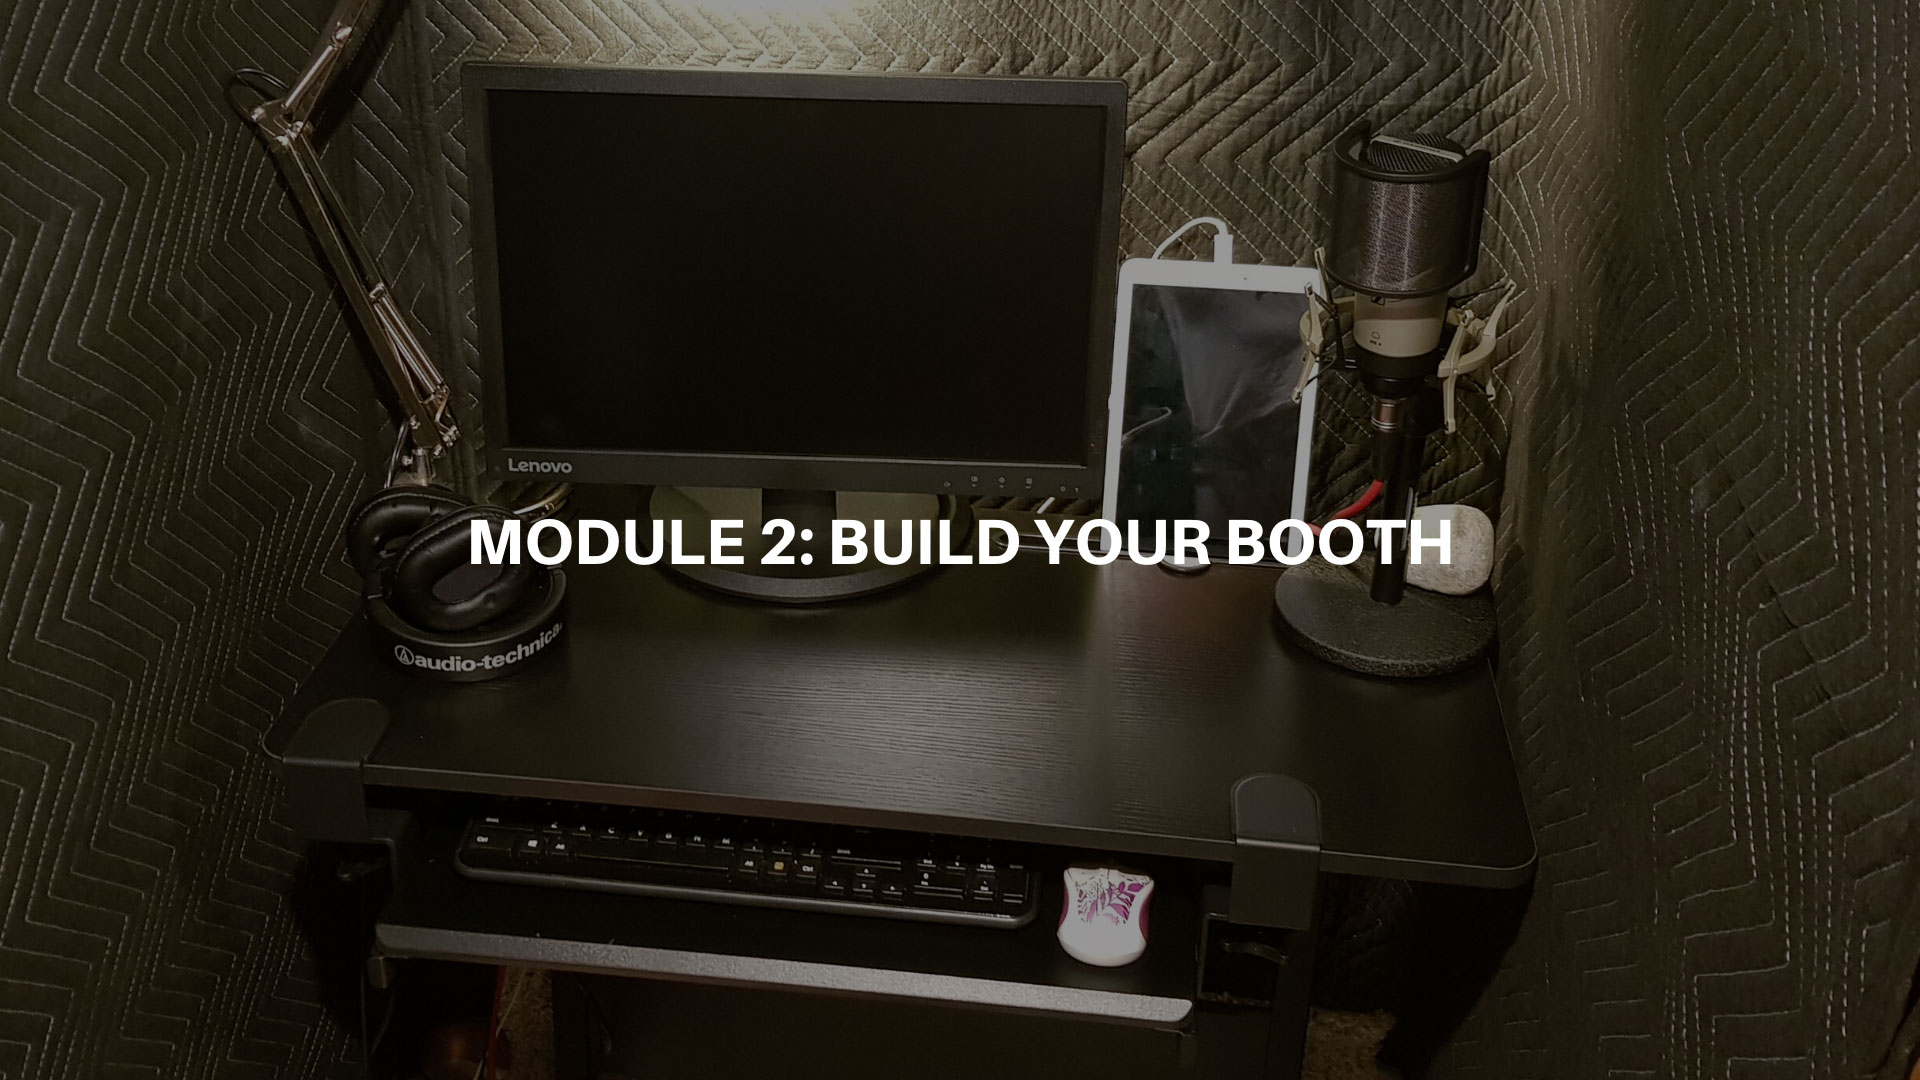 Module 2 - Build Your Booth